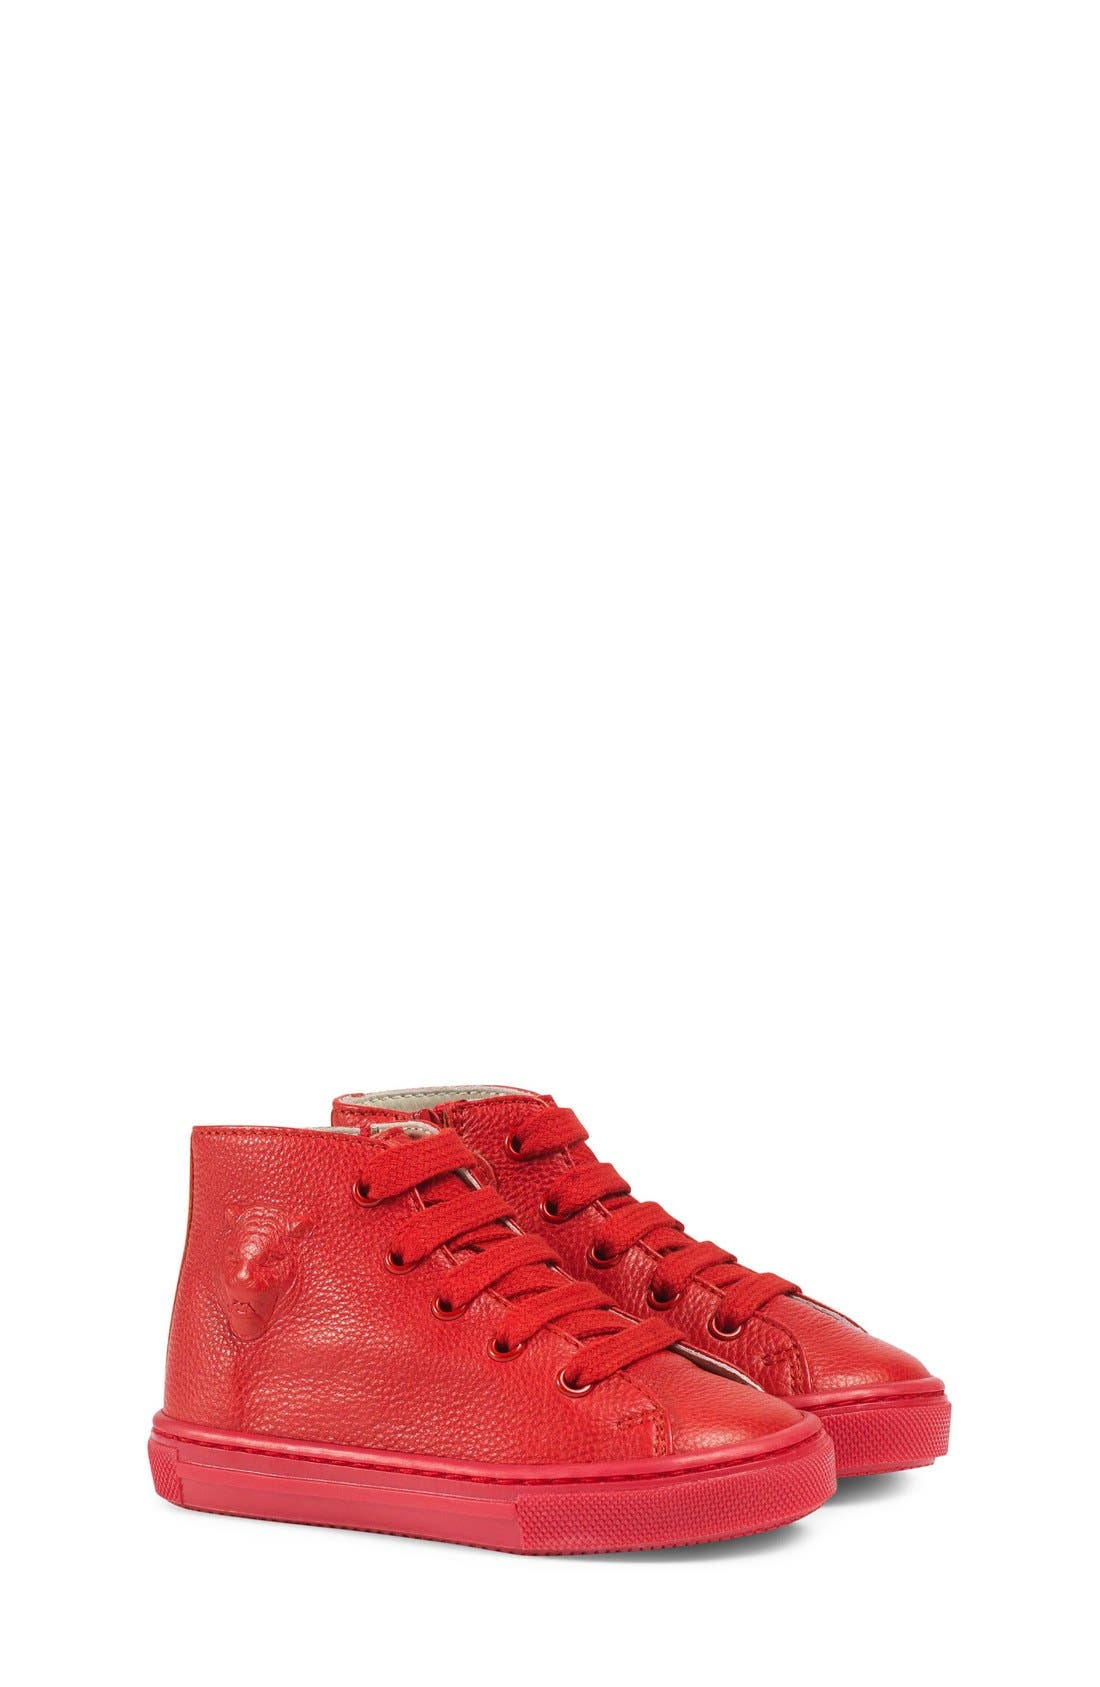 Major High Top Sneaker,                             Main thumbnail 1, color,                             Red Leather